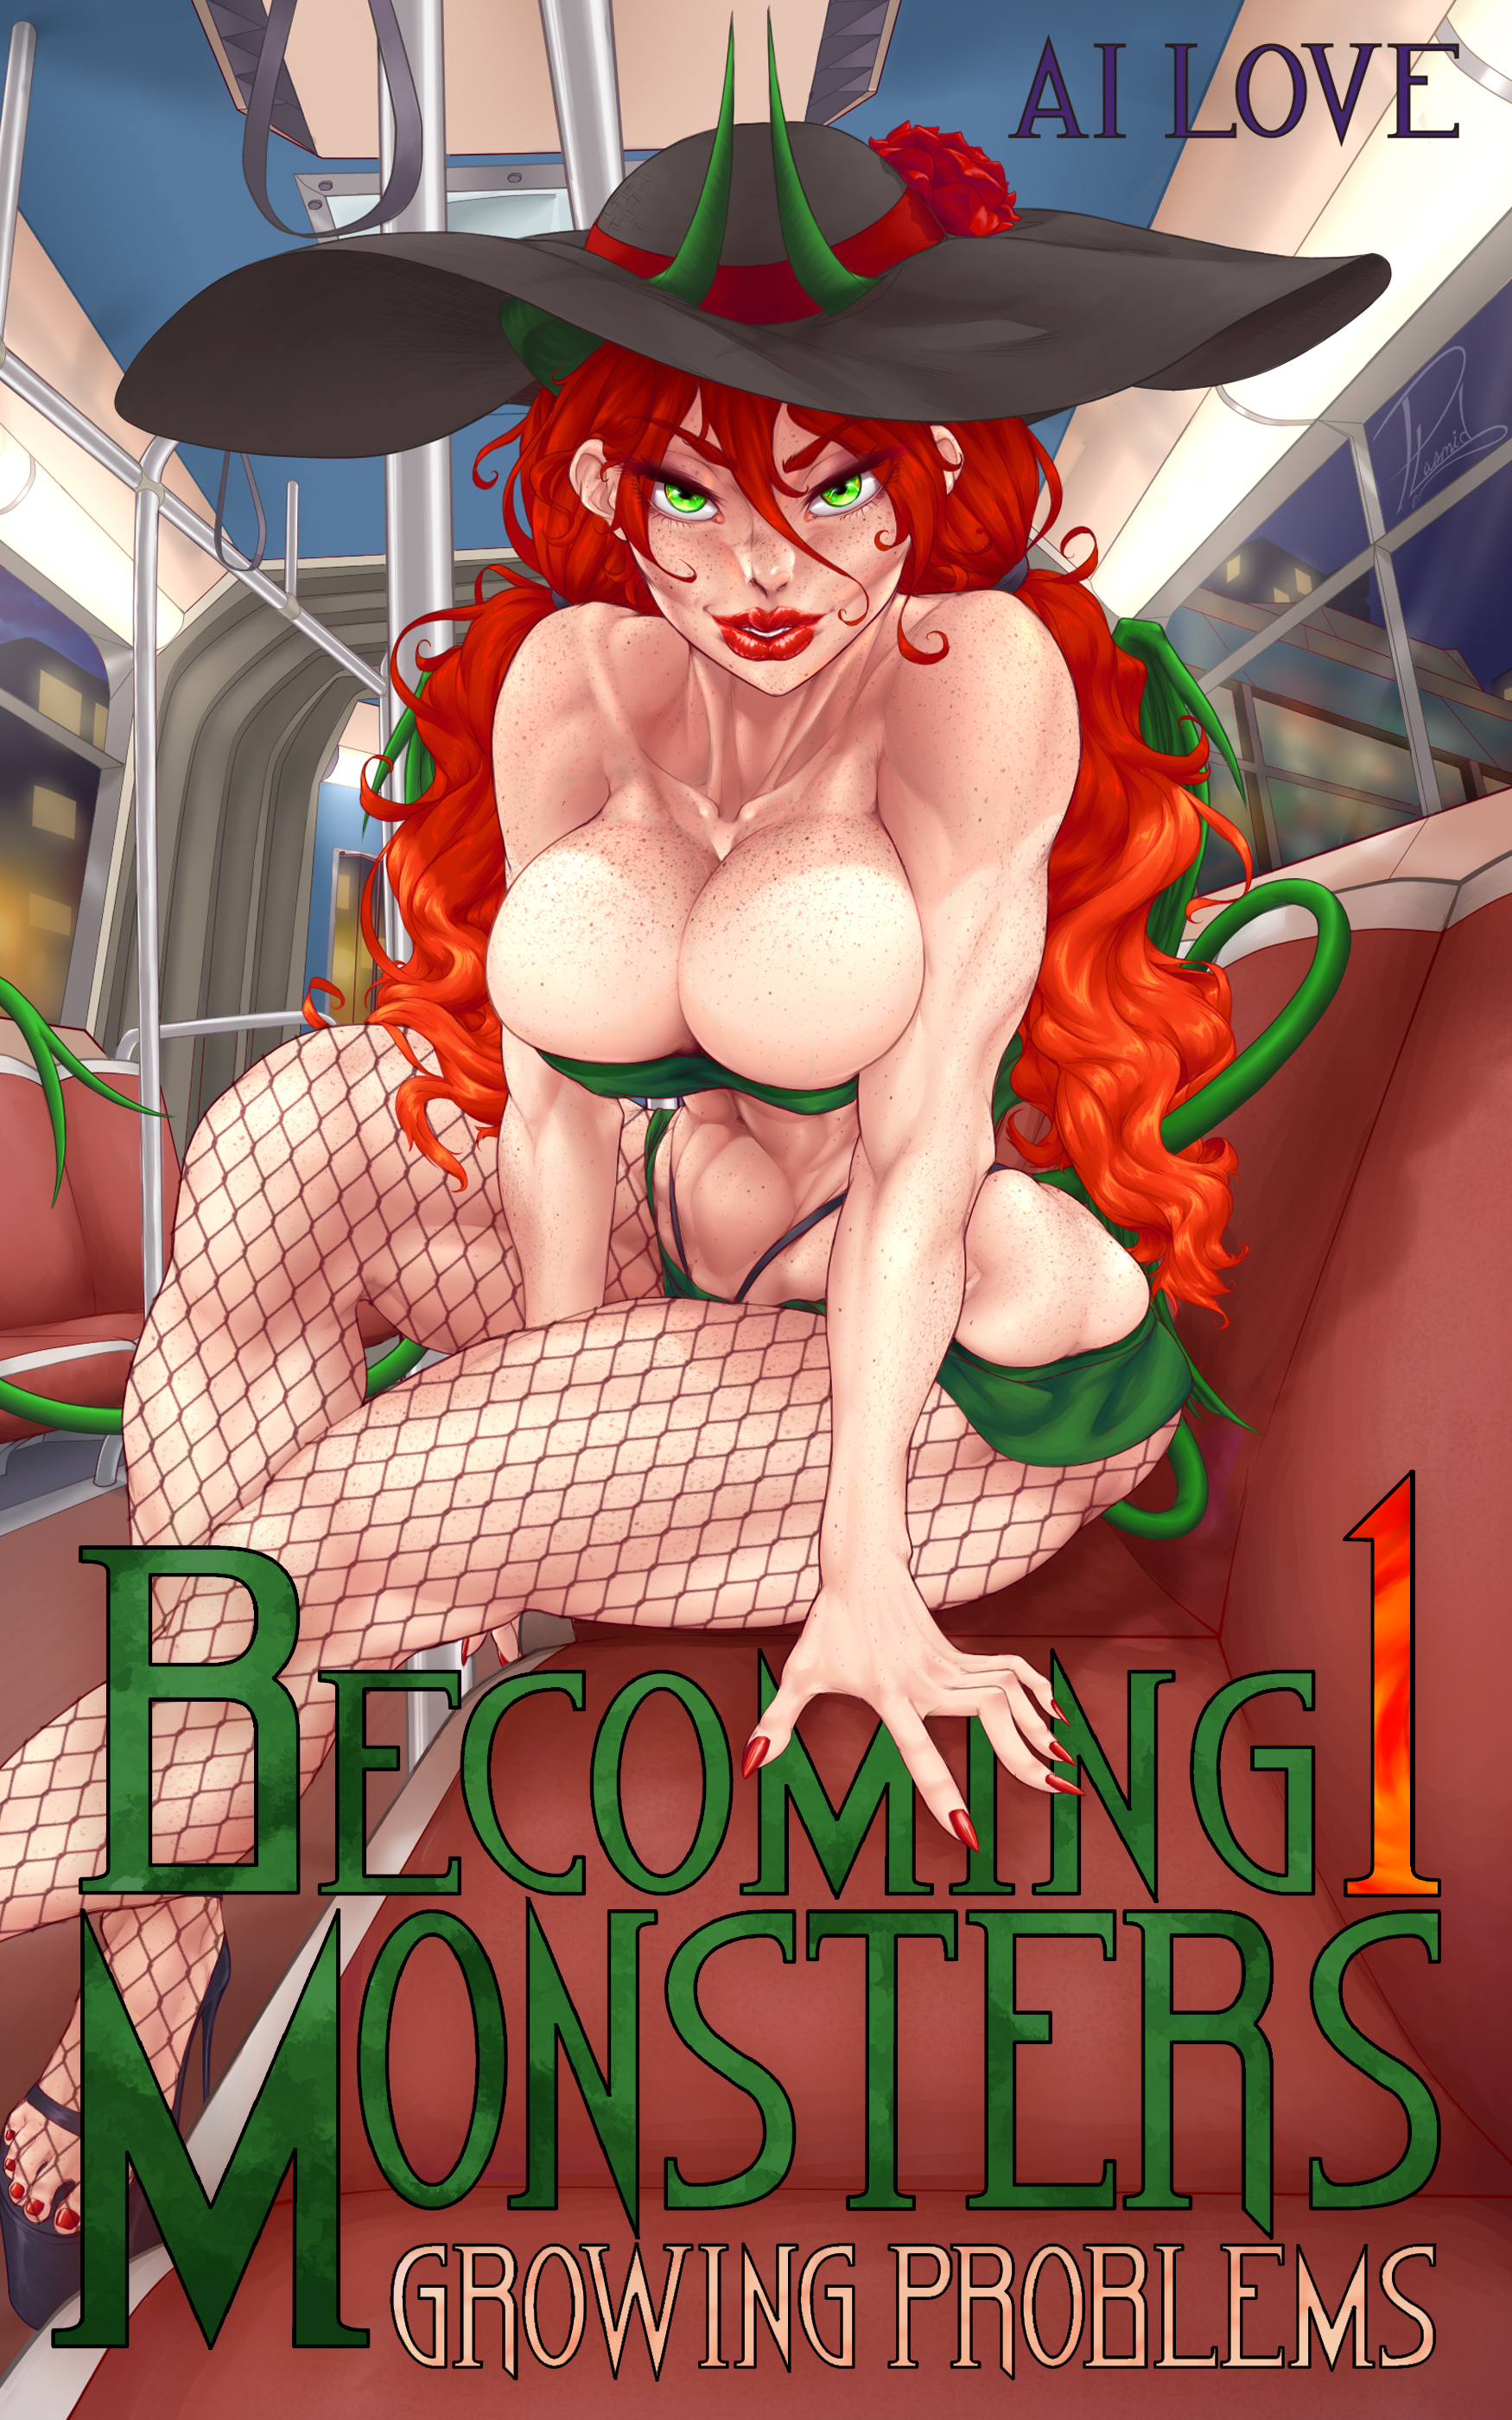 Becoming Monster Book 1: Growing Problems's Ebook Image